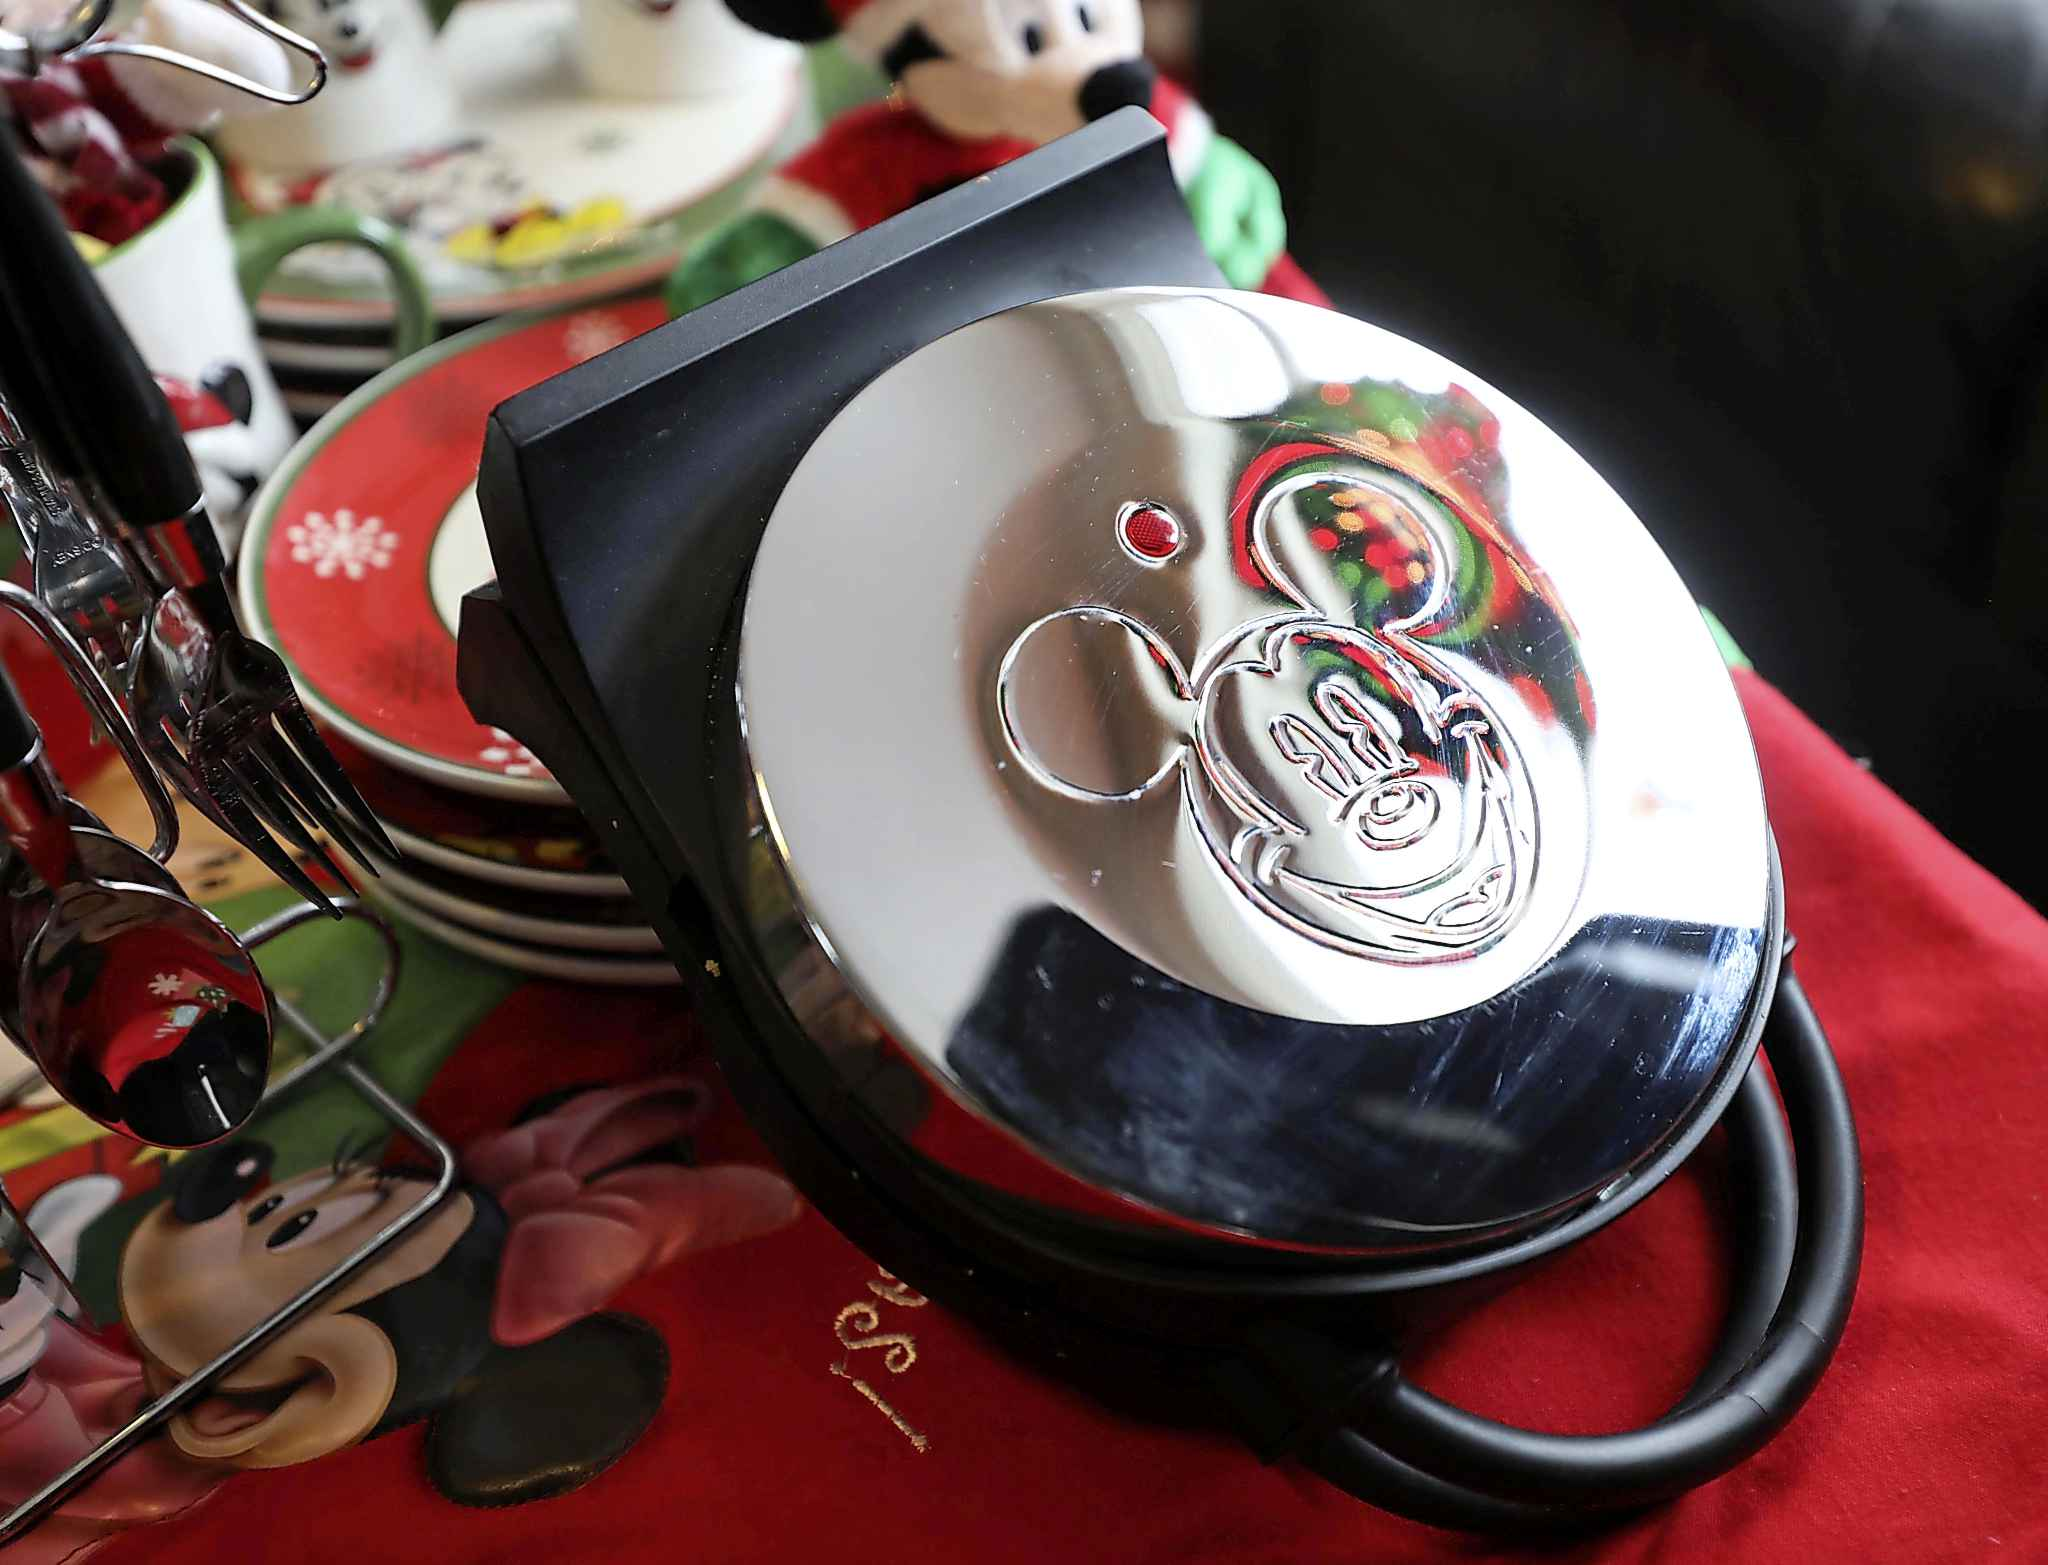 Bradley-Bauhuaud doesn't waffle when it comes to Mickey Mouse memorabilia. (Ruth Bonneville / Winnipeg Free Press)     INTERSECTION - Mickey Mouse      Michelle Bahuaud's (Mickey's) incredibly large collection of  Mickey Mouse  items.  Photo of a waffle iron that makes waffles in the shape of Mickey Mouse.      For a Christmas-y Intersection piece on Michelle, who goes by Mickey, who collects Mickey Mouse paraphernalia. She has shelves, cabinets and even an entire room in her home devoted to her favourite mouse.  She has decorated her entire Christmas tree and her living room for Christmas this year, exclusively with her MM ornaments, etc.       See Dave Sanderson story.     Nov 25th   2019